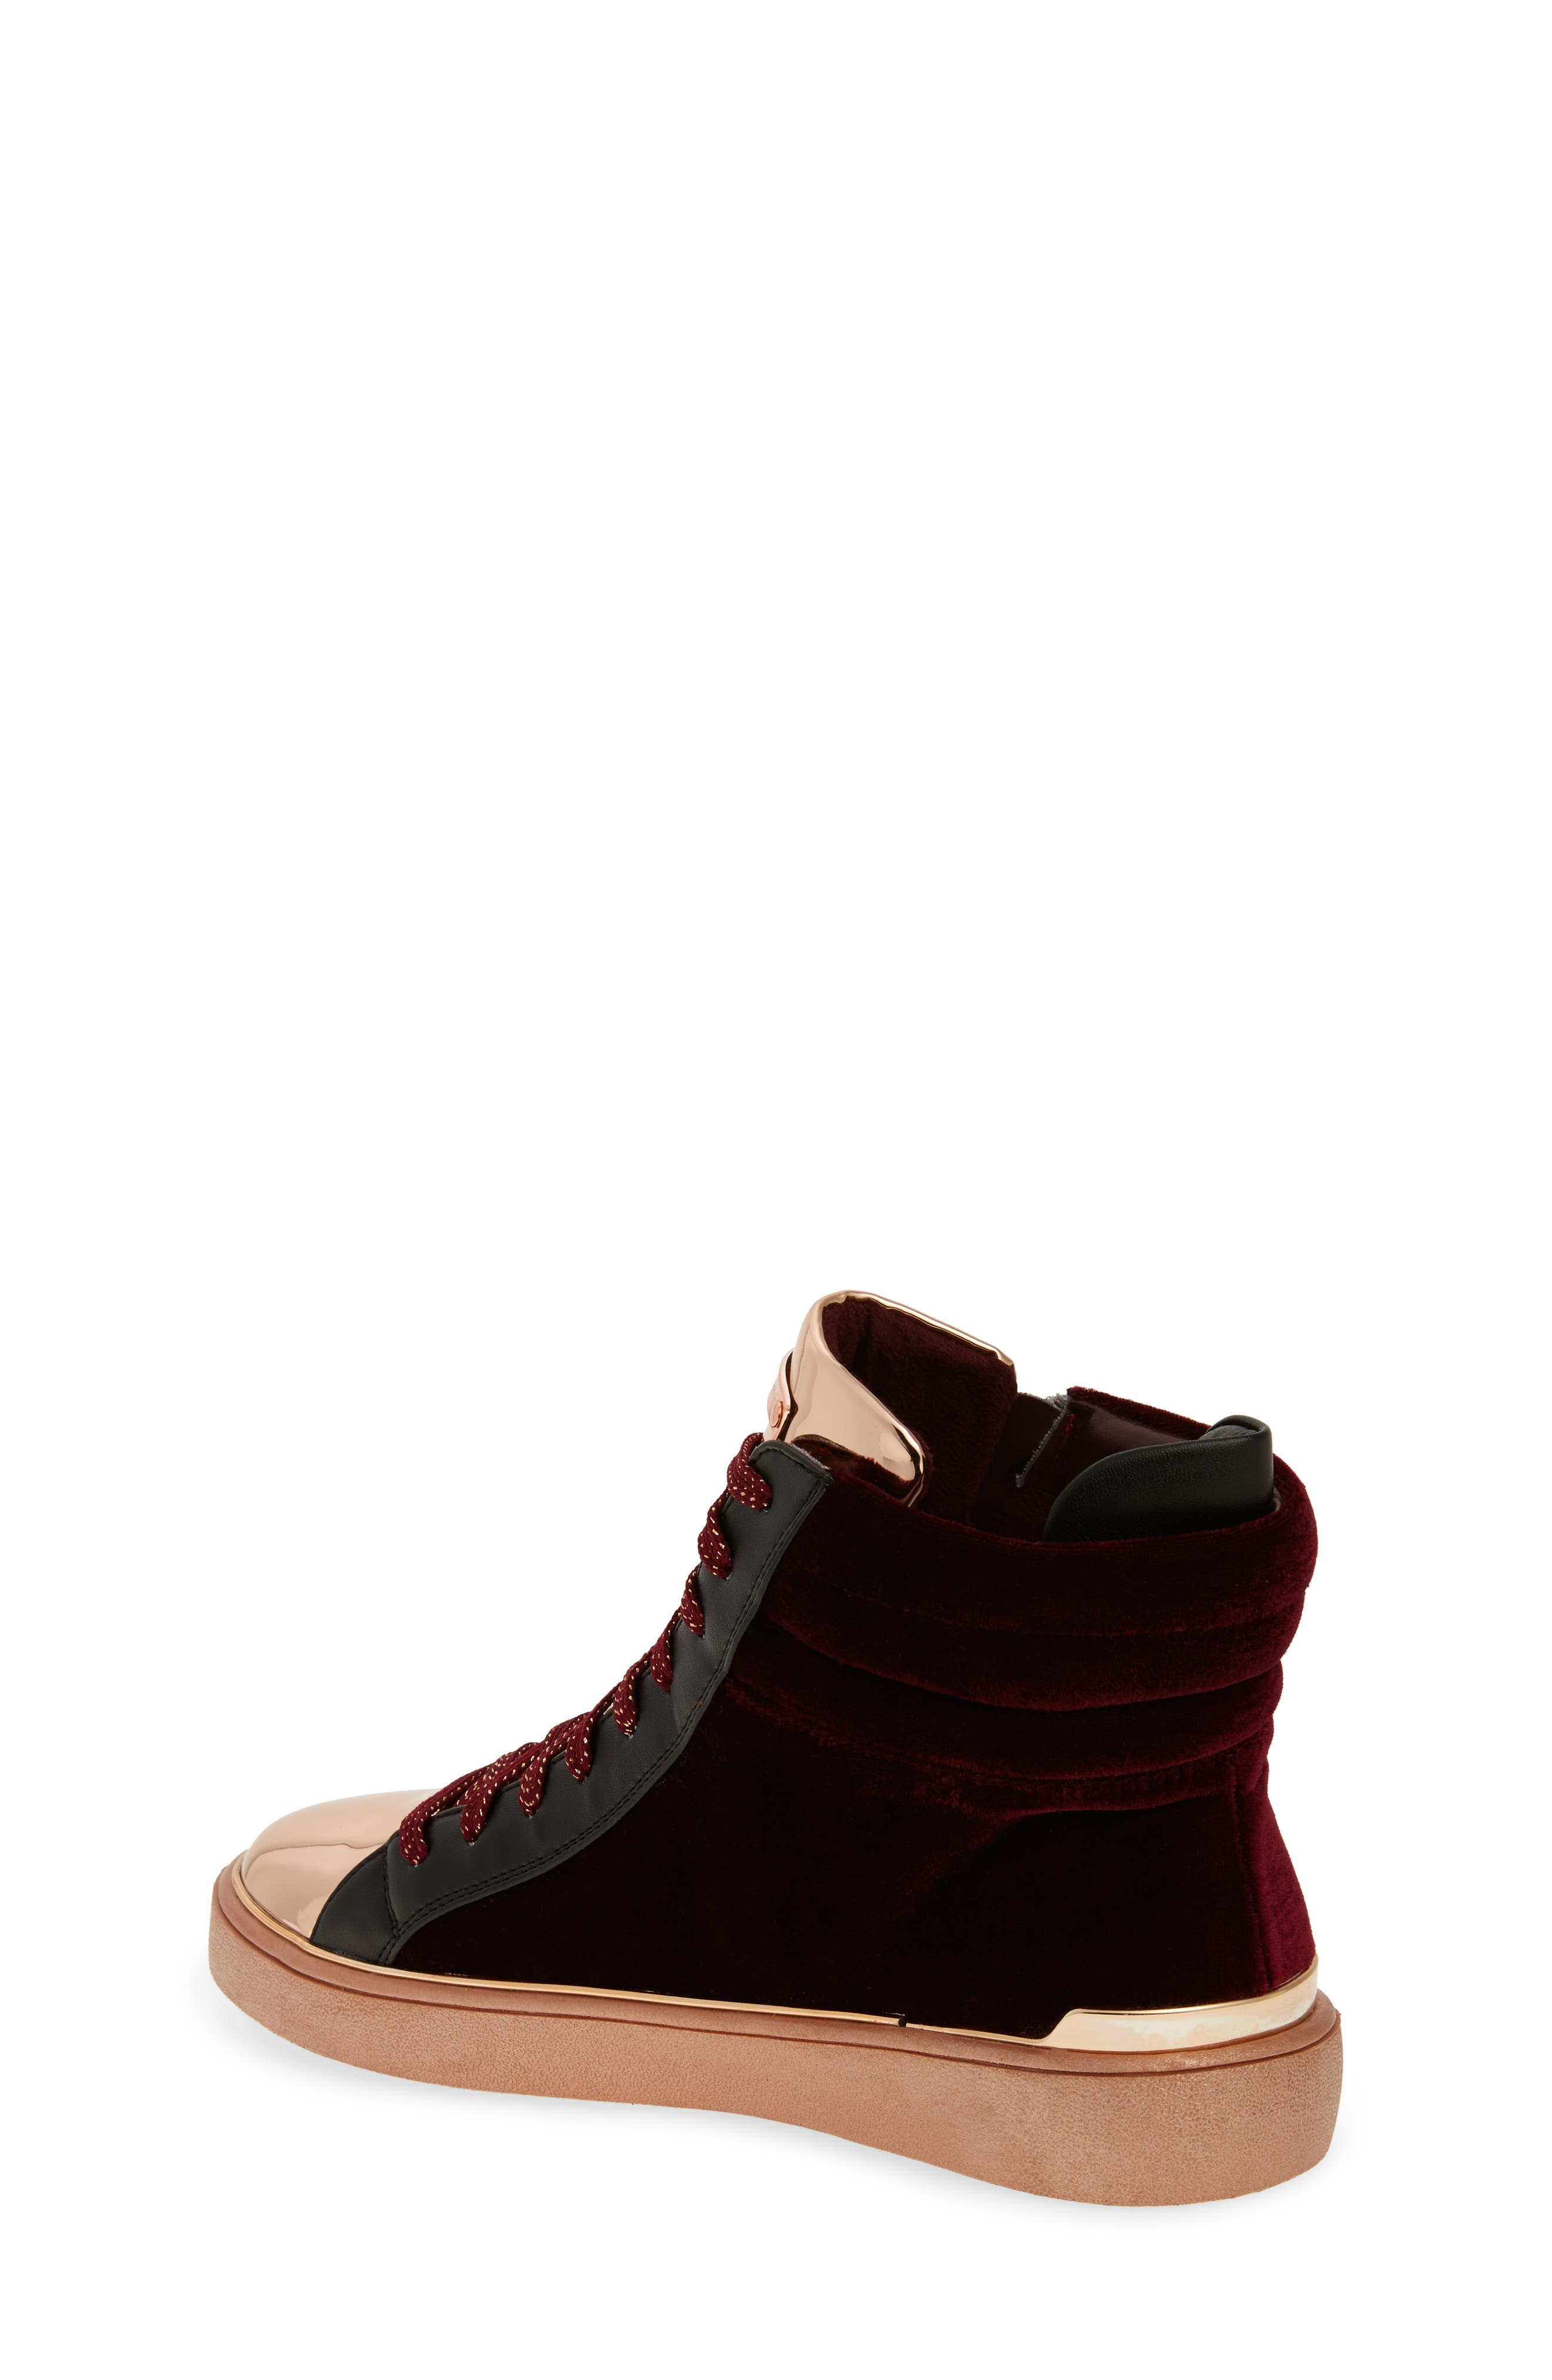 Ivy Blue High Top Sneaker,                             Alternate thumbnail 4, color,